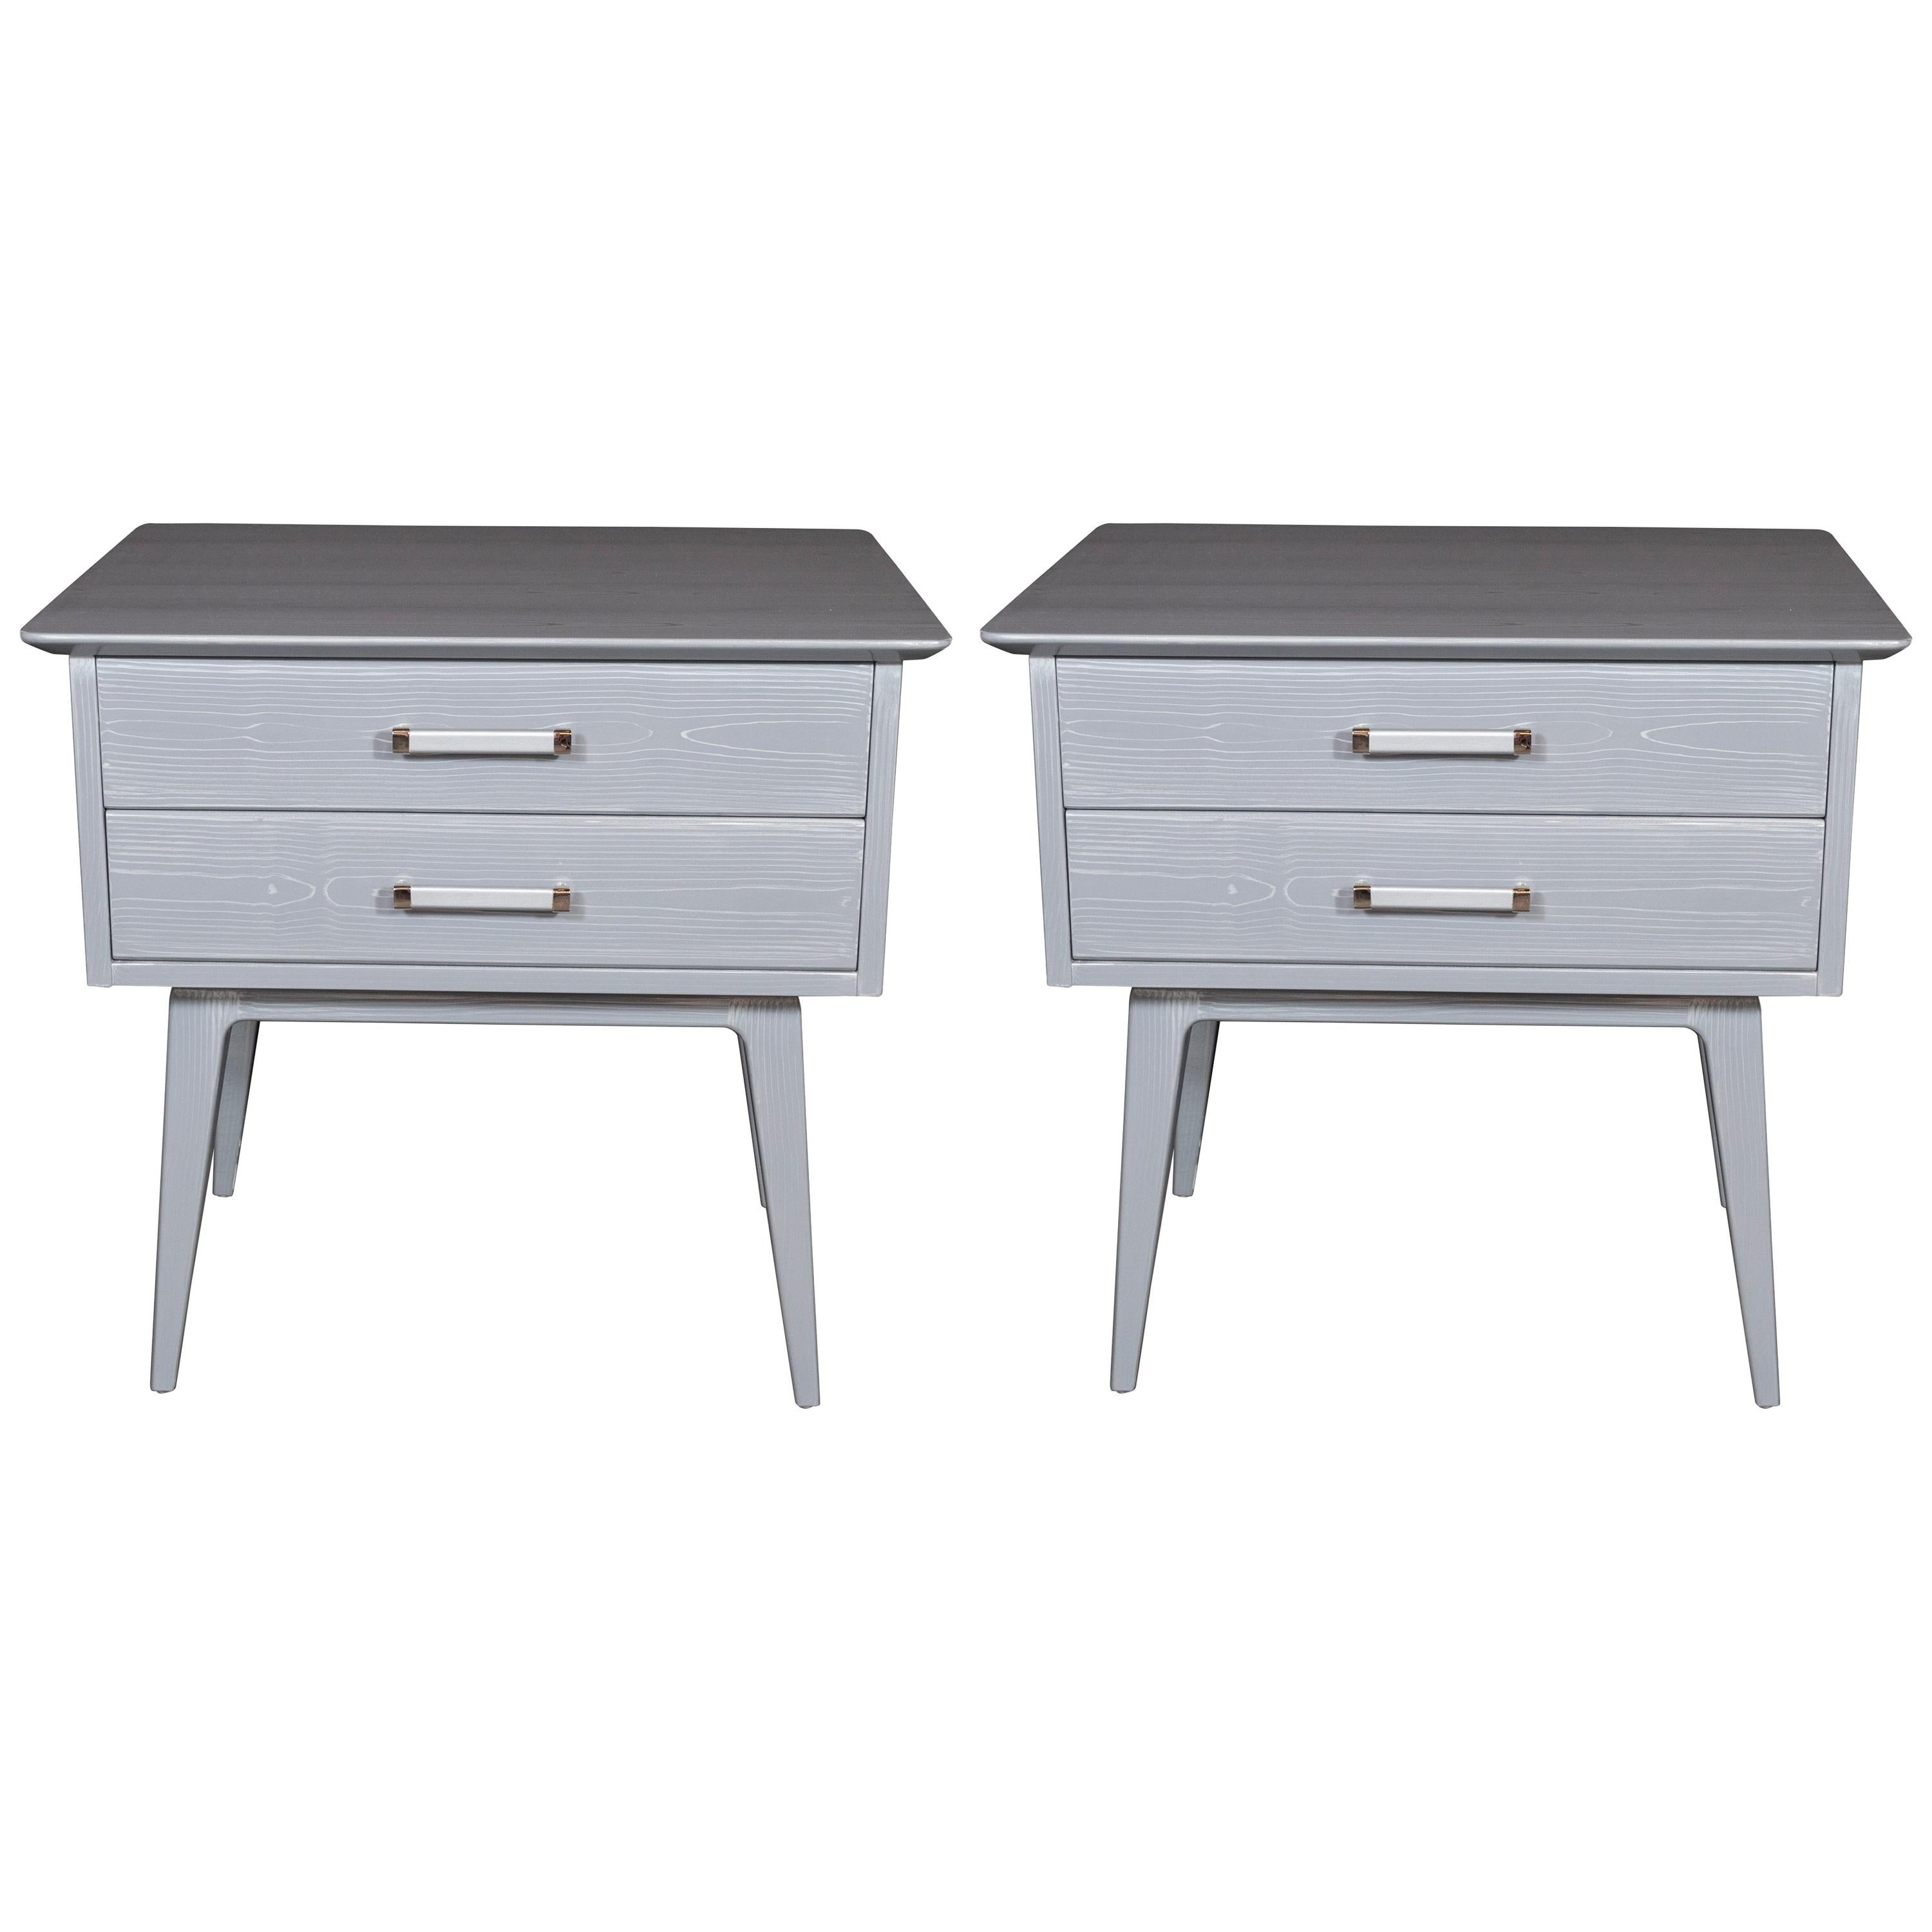 Pair of Midcentury Cerused Nightstands with Chromed Fittings by John Stuart Inc.